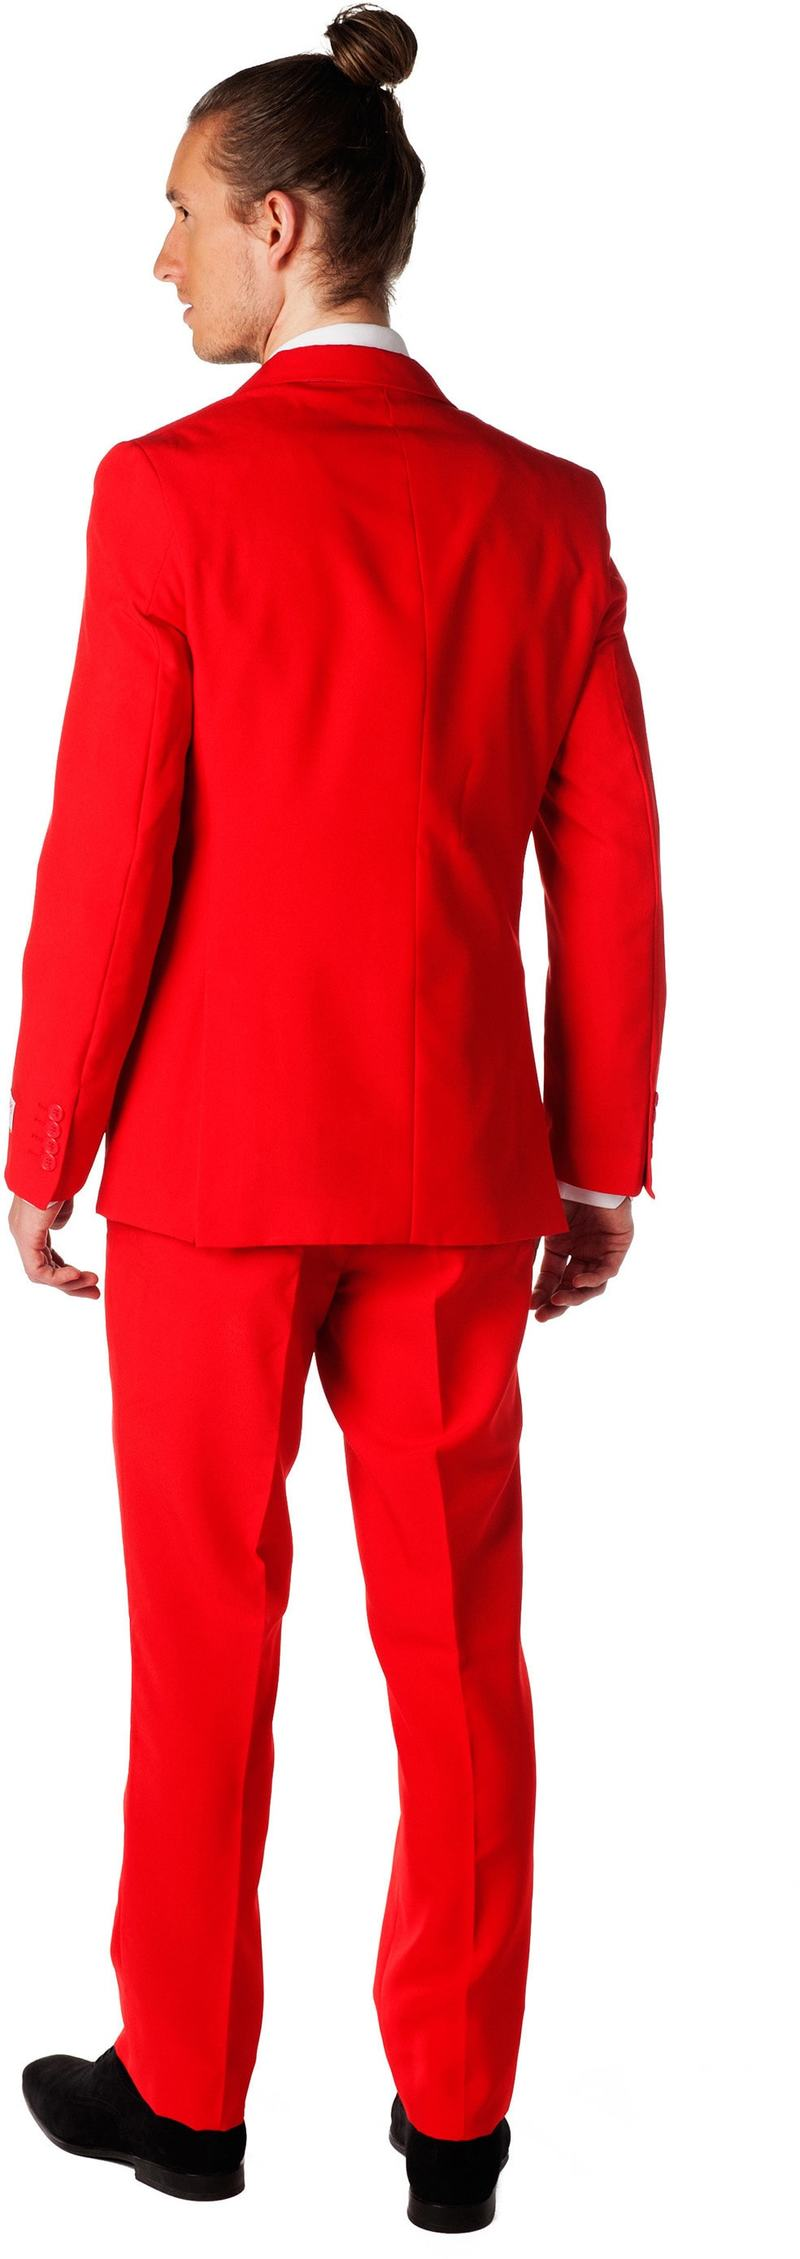 OppoSuits Red Devil Suit photo 1